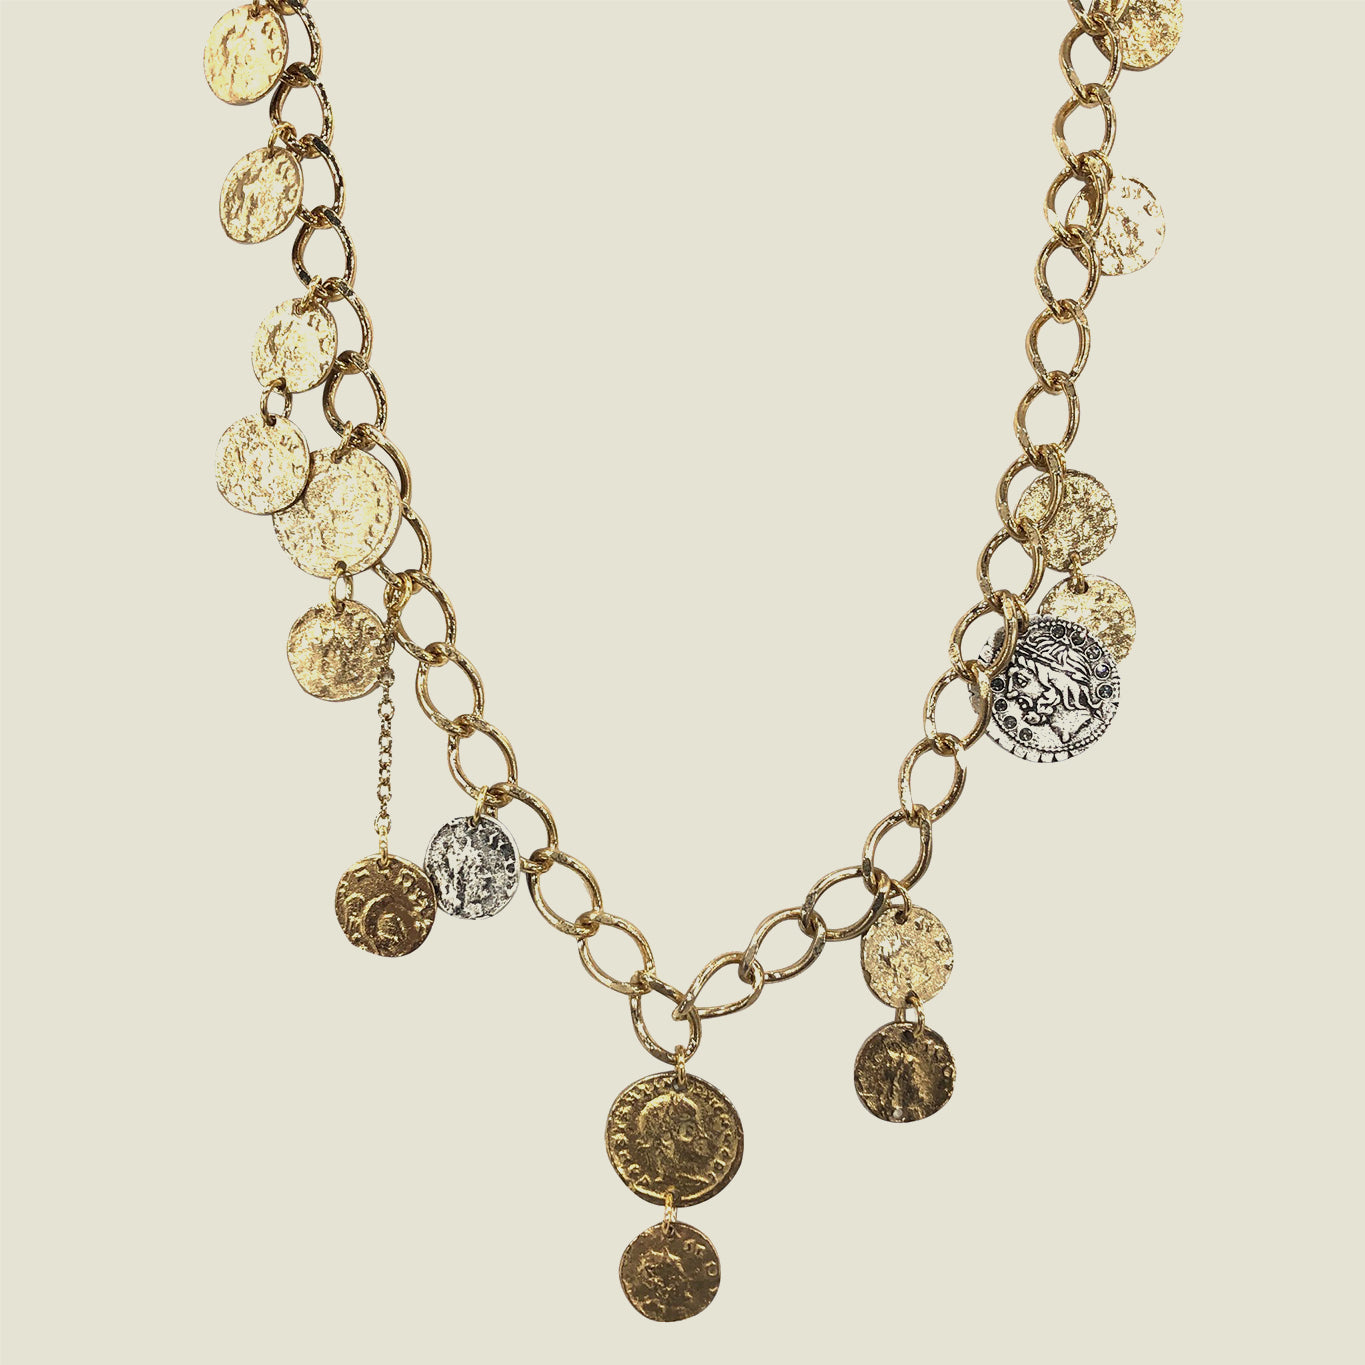 Gold Roman Coin Necklace - Blackbird General Store